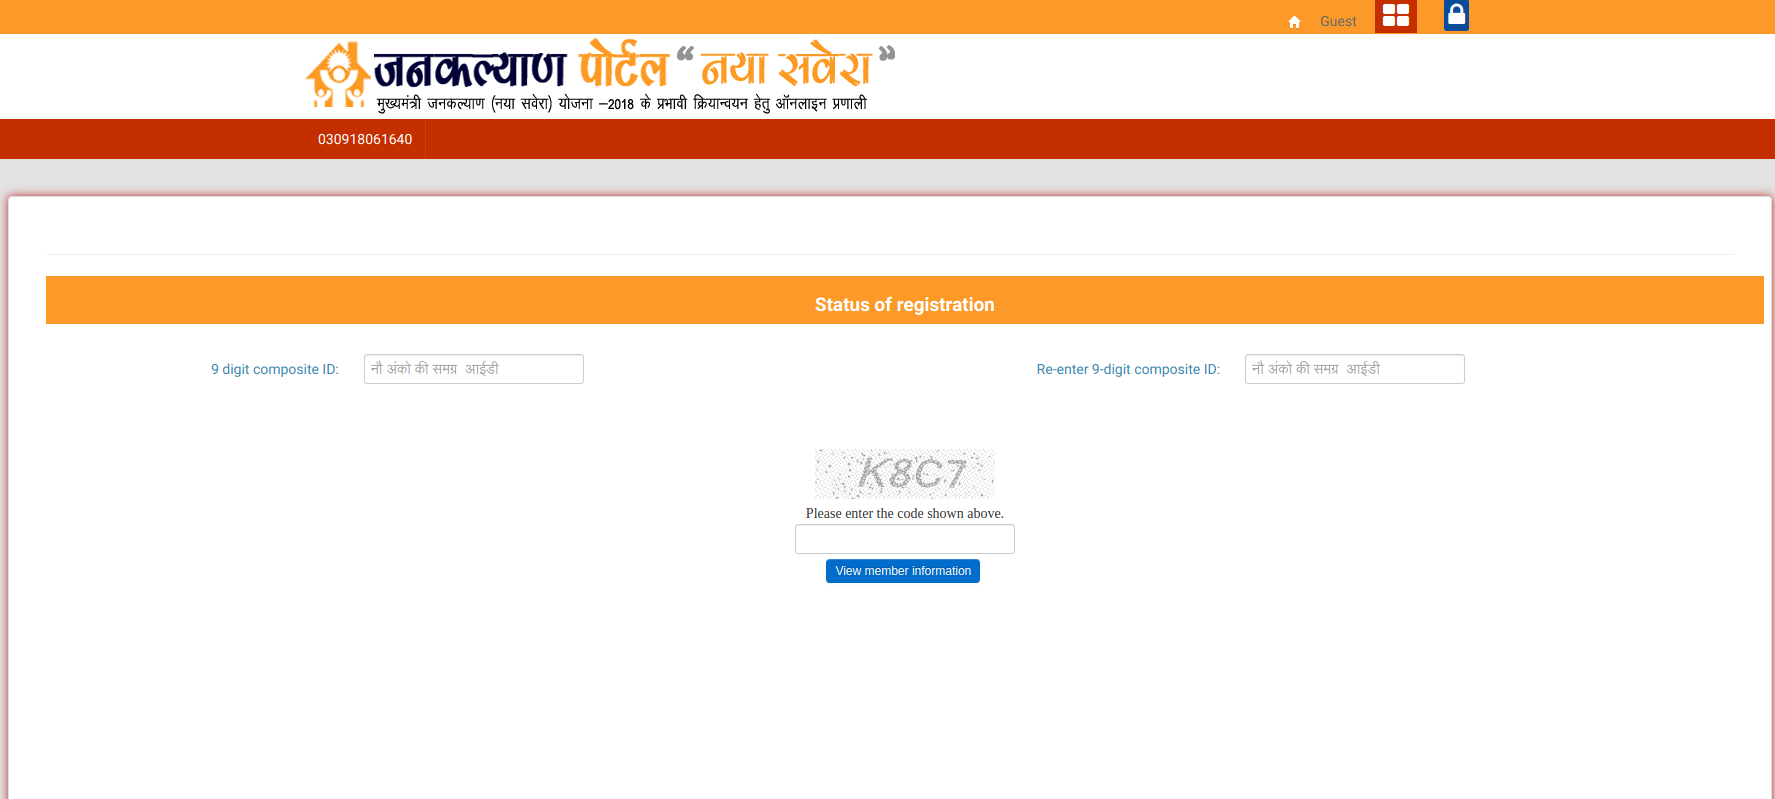 Mukhyamantri Asangathi Mazdoor Kalyan Yojana - Track Application